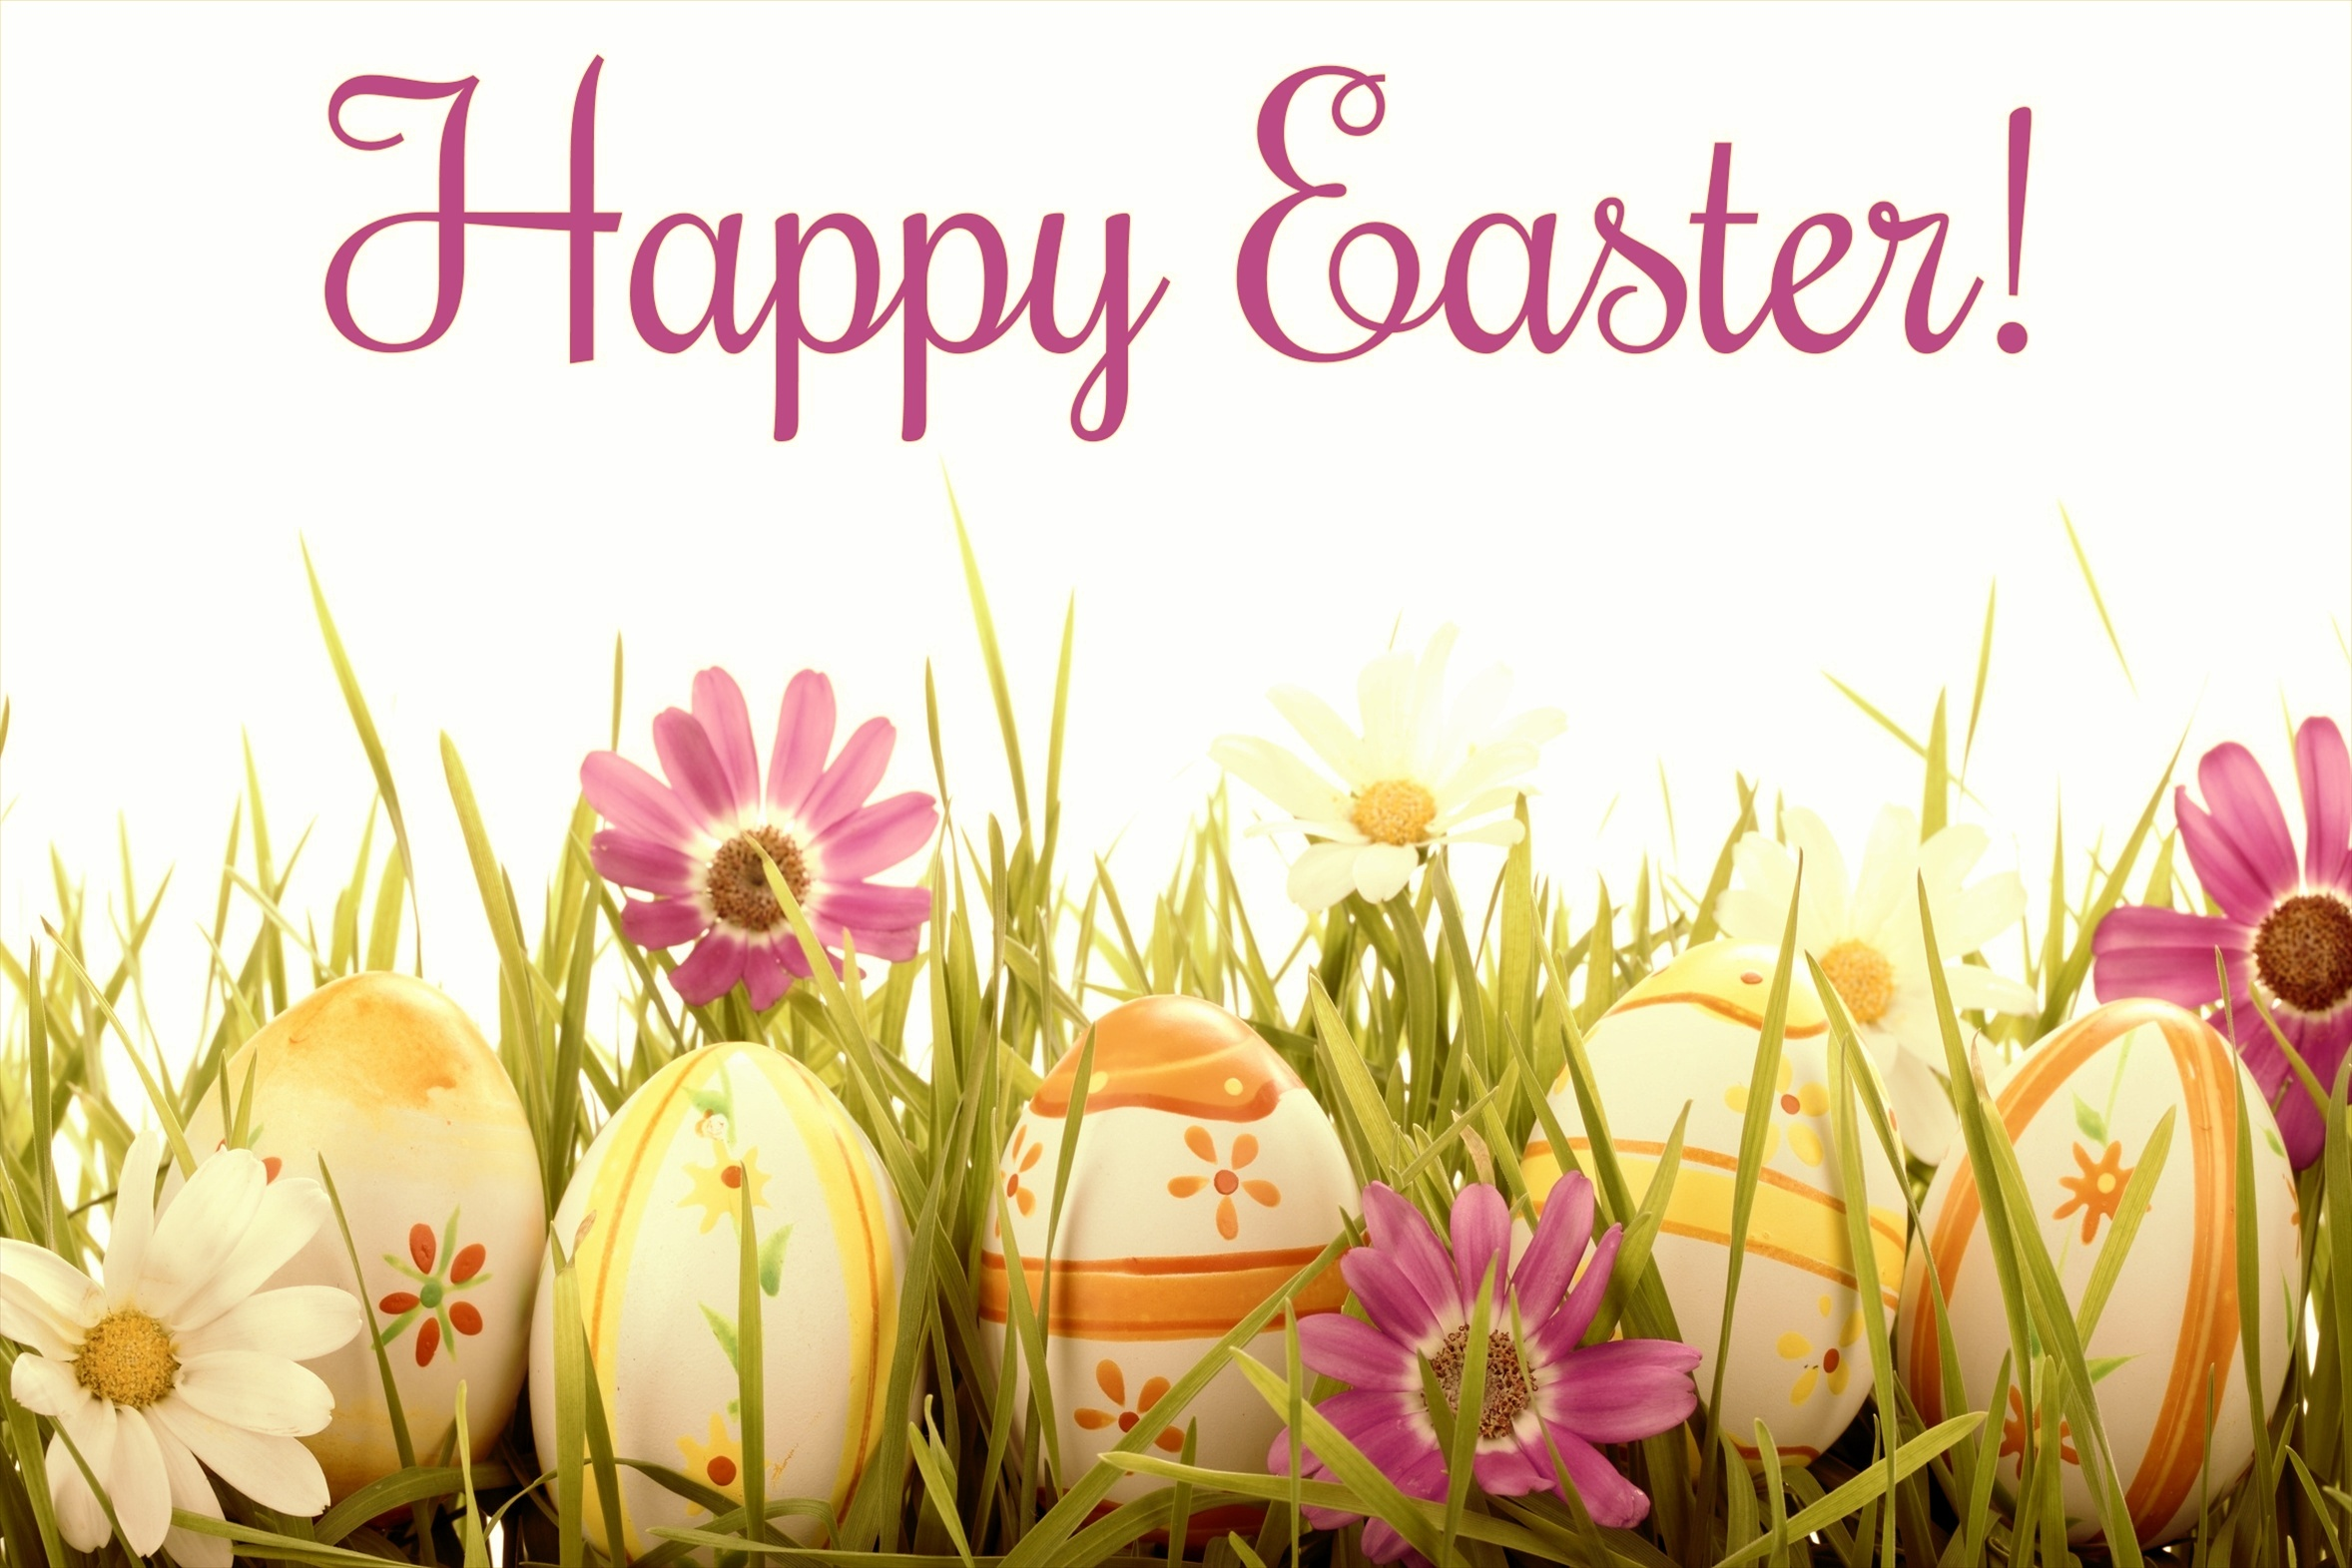 Happy Easter Sunday Wallpaper Images Photos Pictures 2015 2356x1571